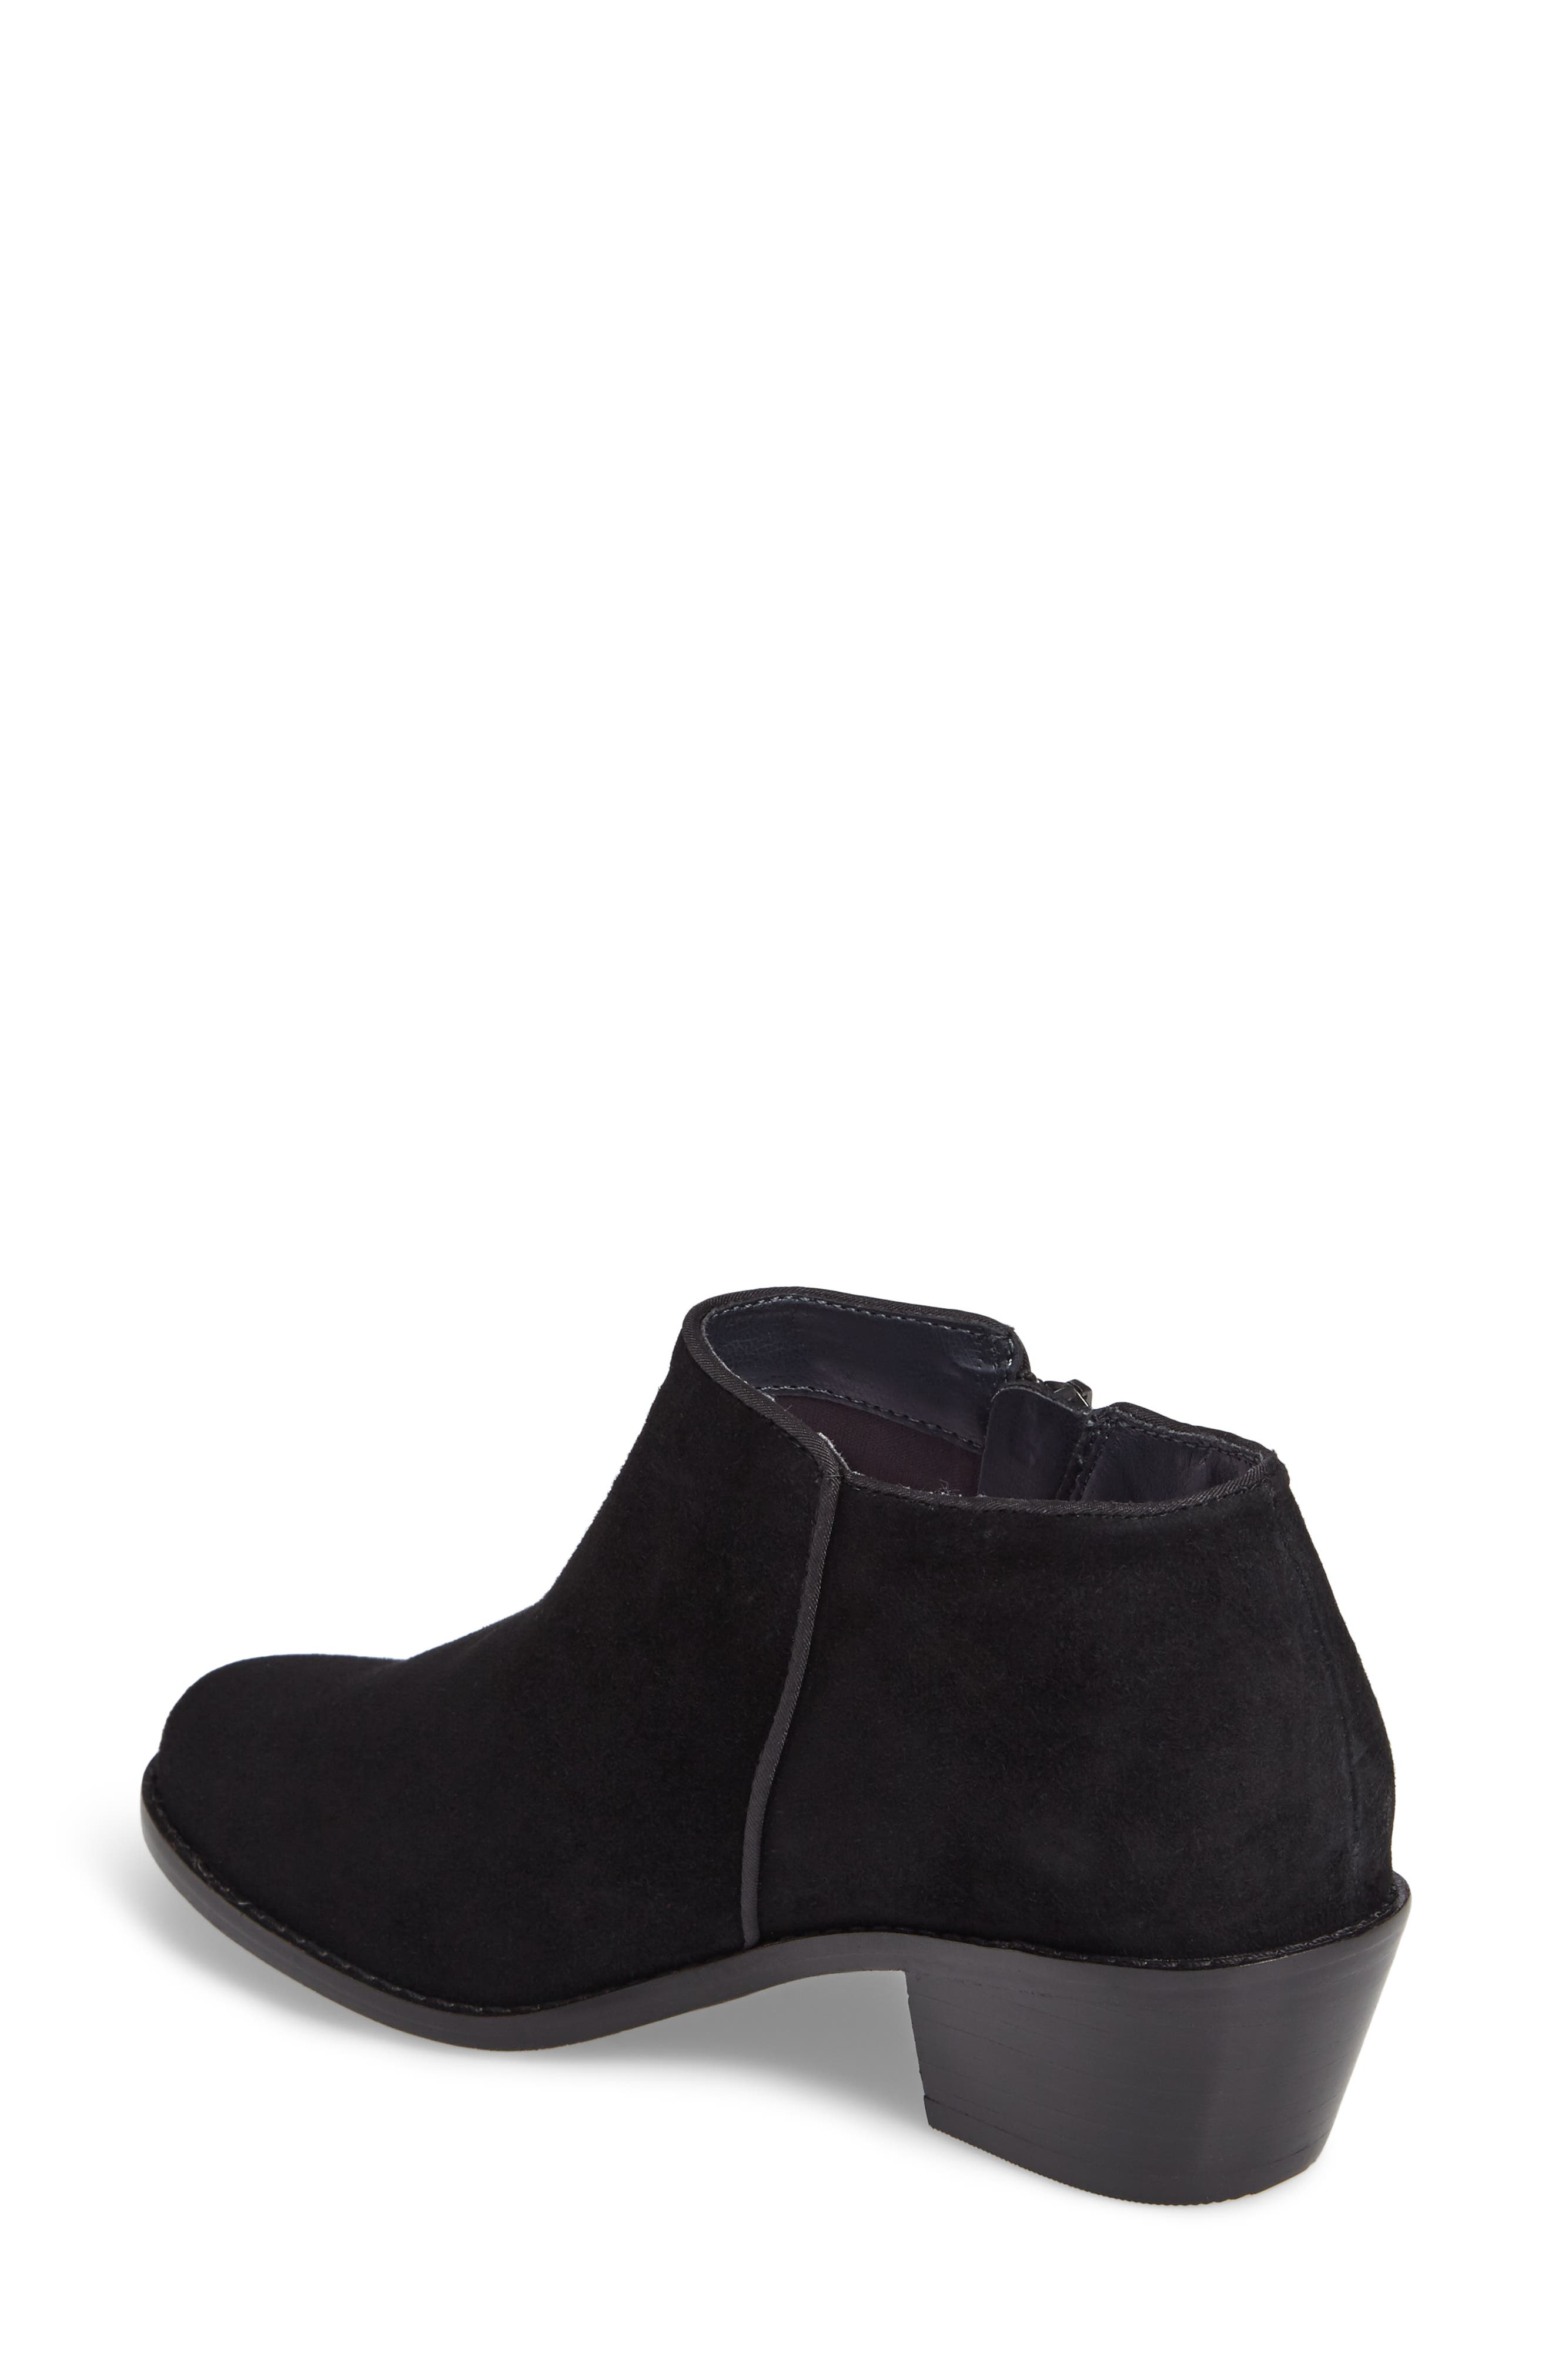 Serena Ankle Boot,                             Alternate thumbnail 2, color,                             Black Suede